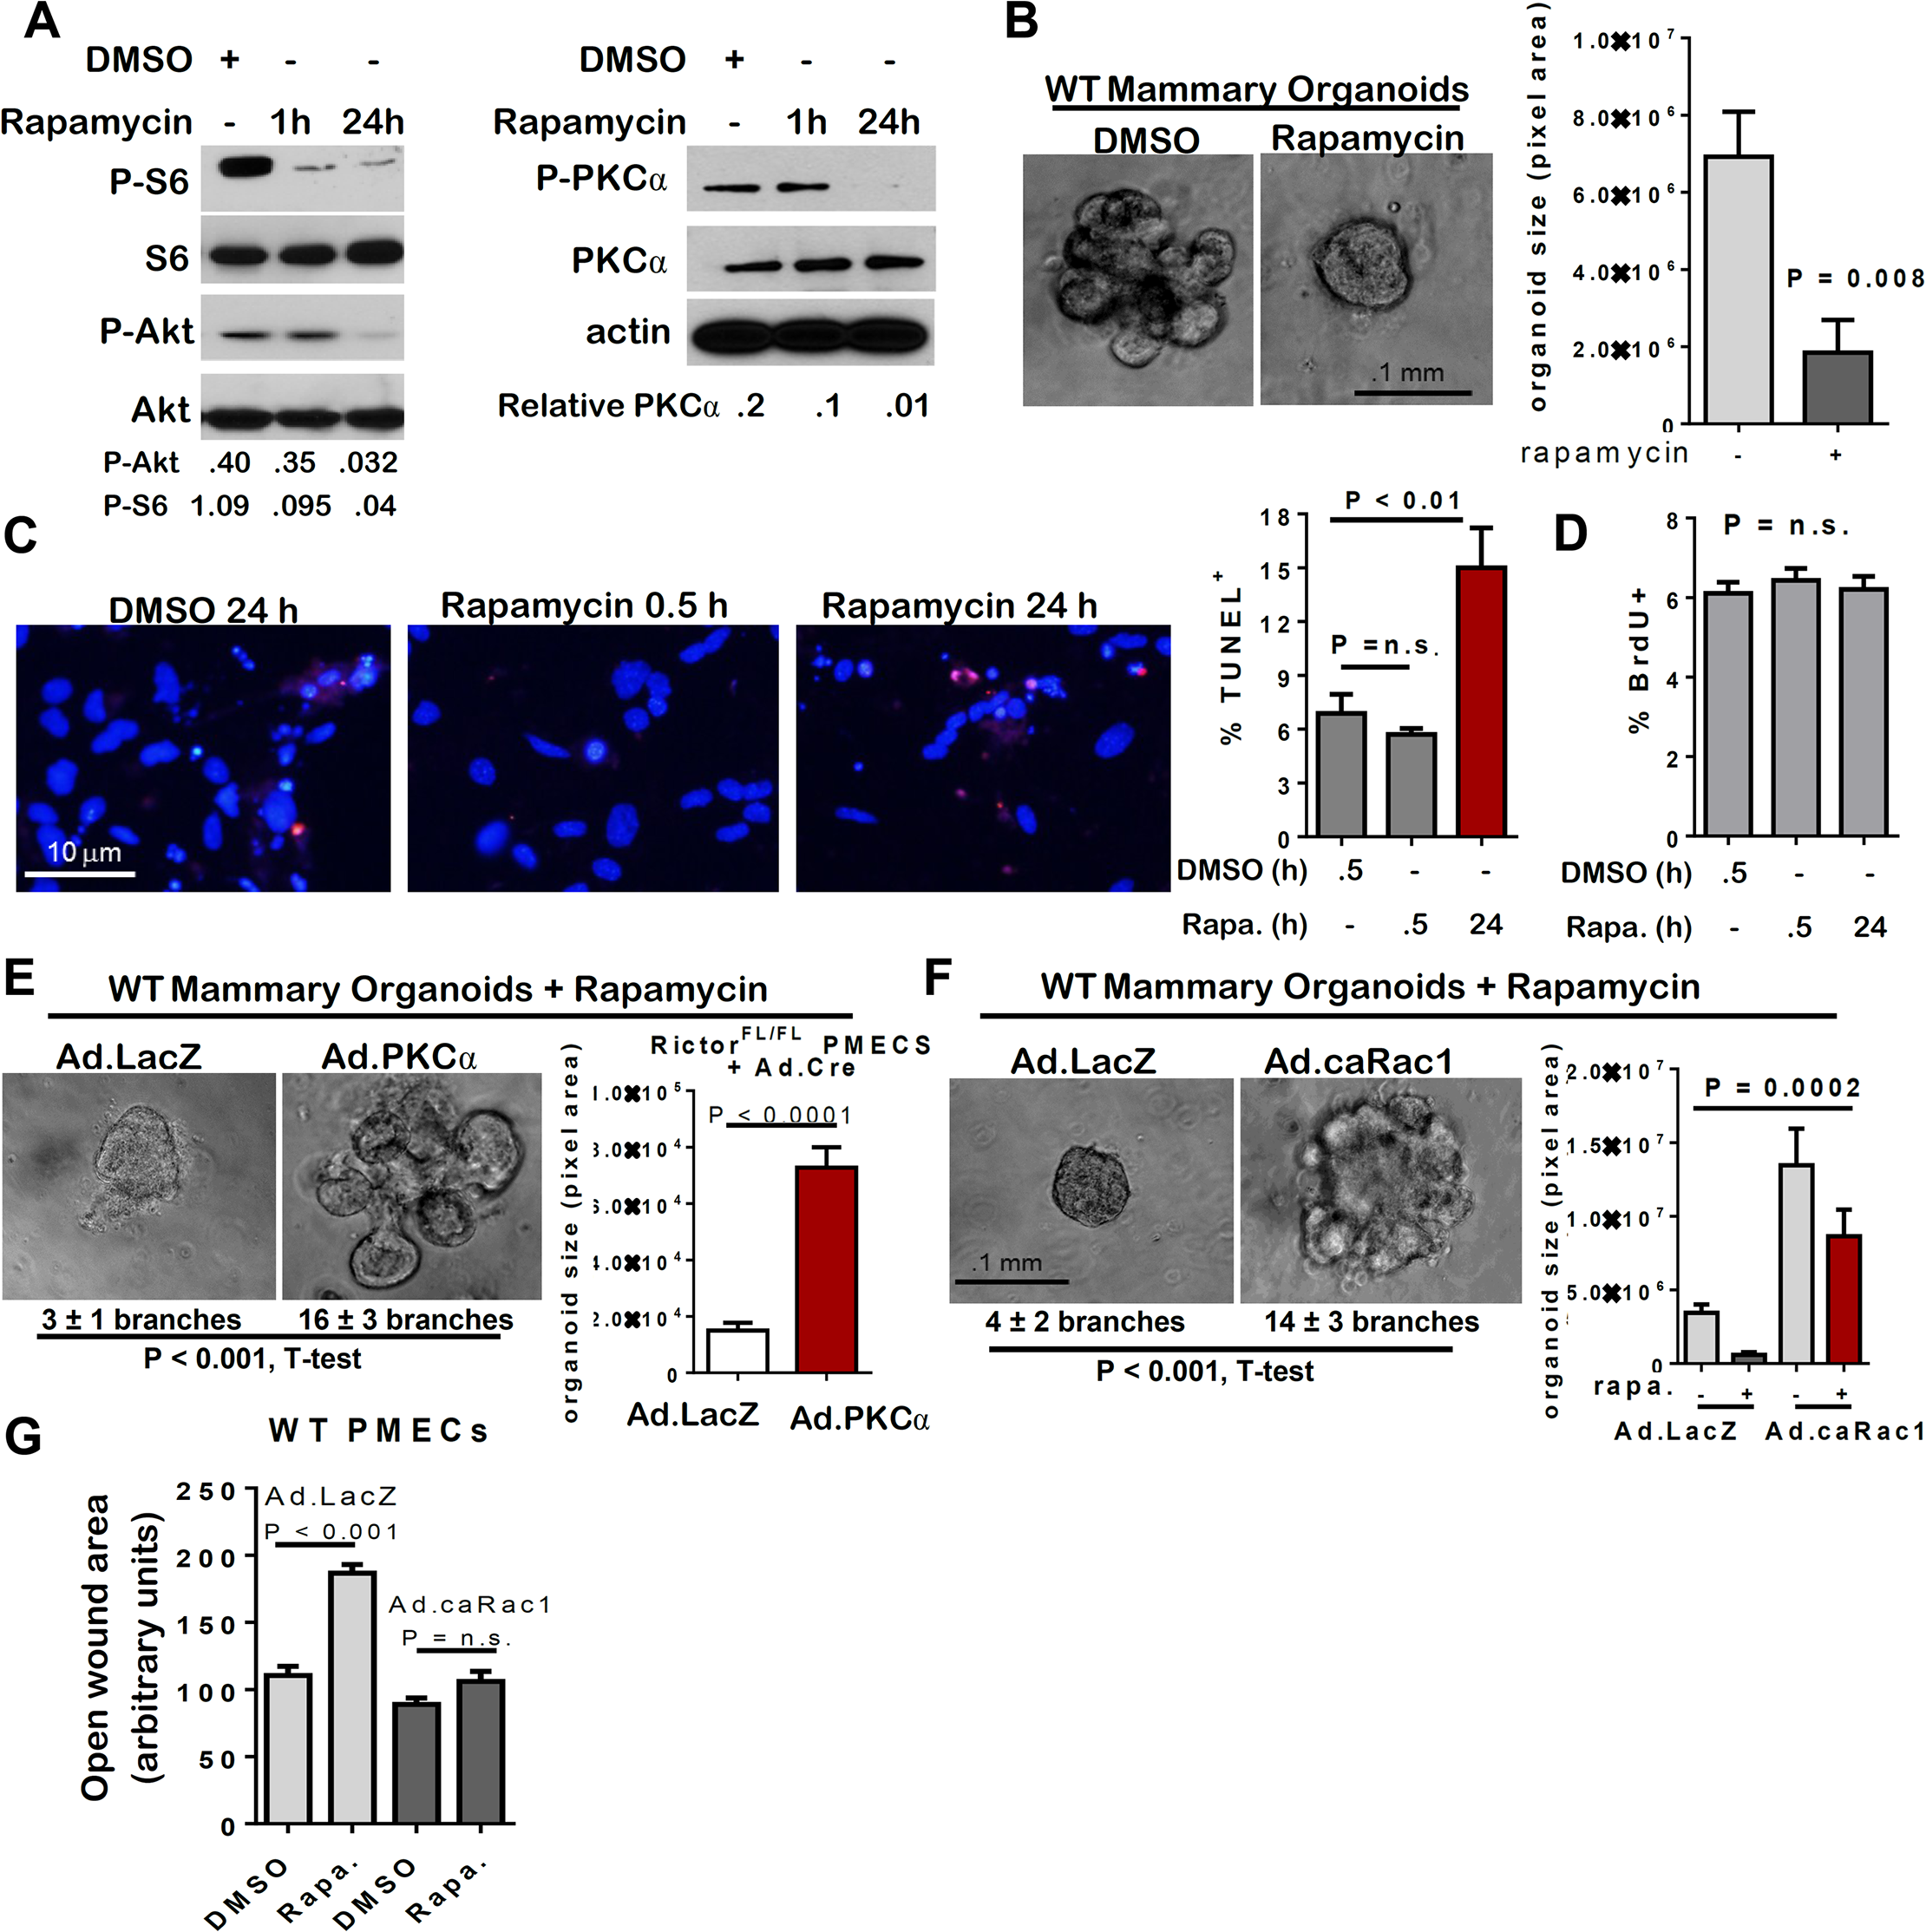 mTOR inhibition with rapamycin decreases MEC survival and branching.